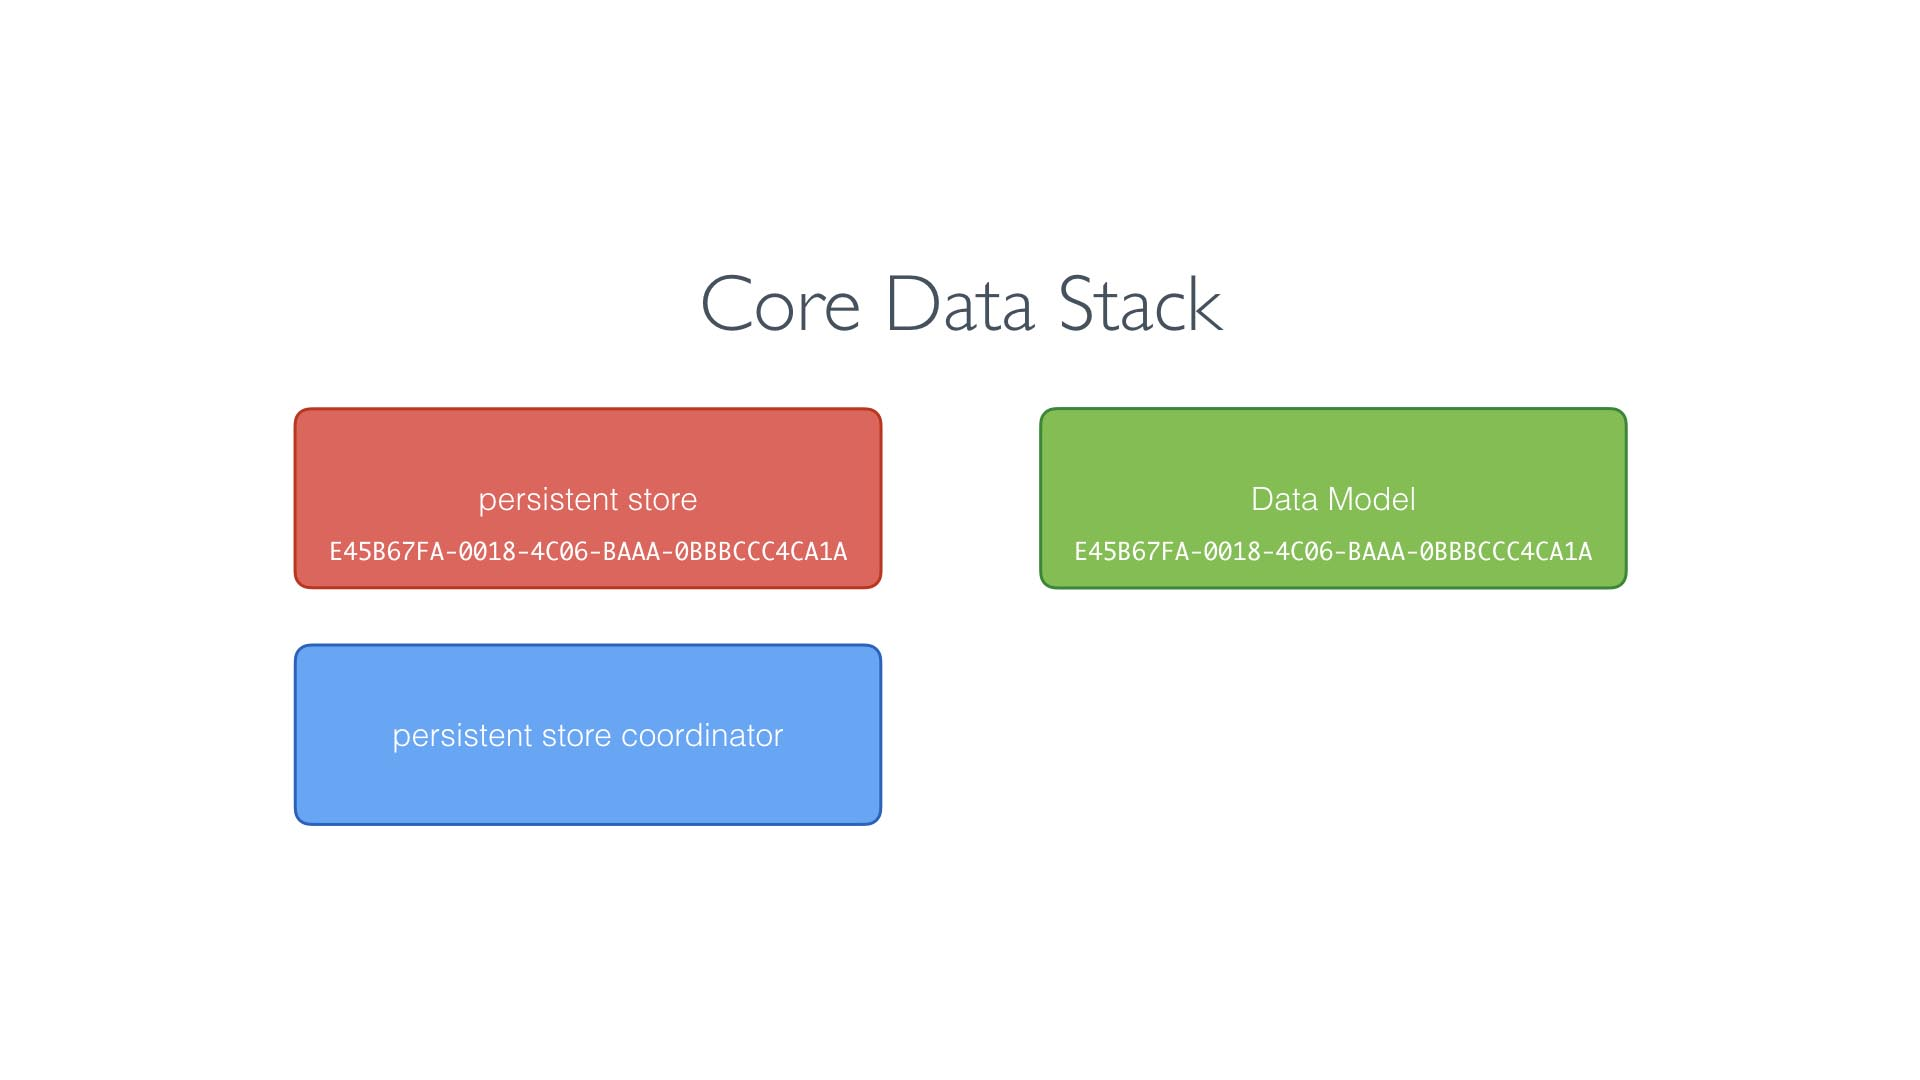 Core Data stores the unique identifier of the data model in the persistent store.